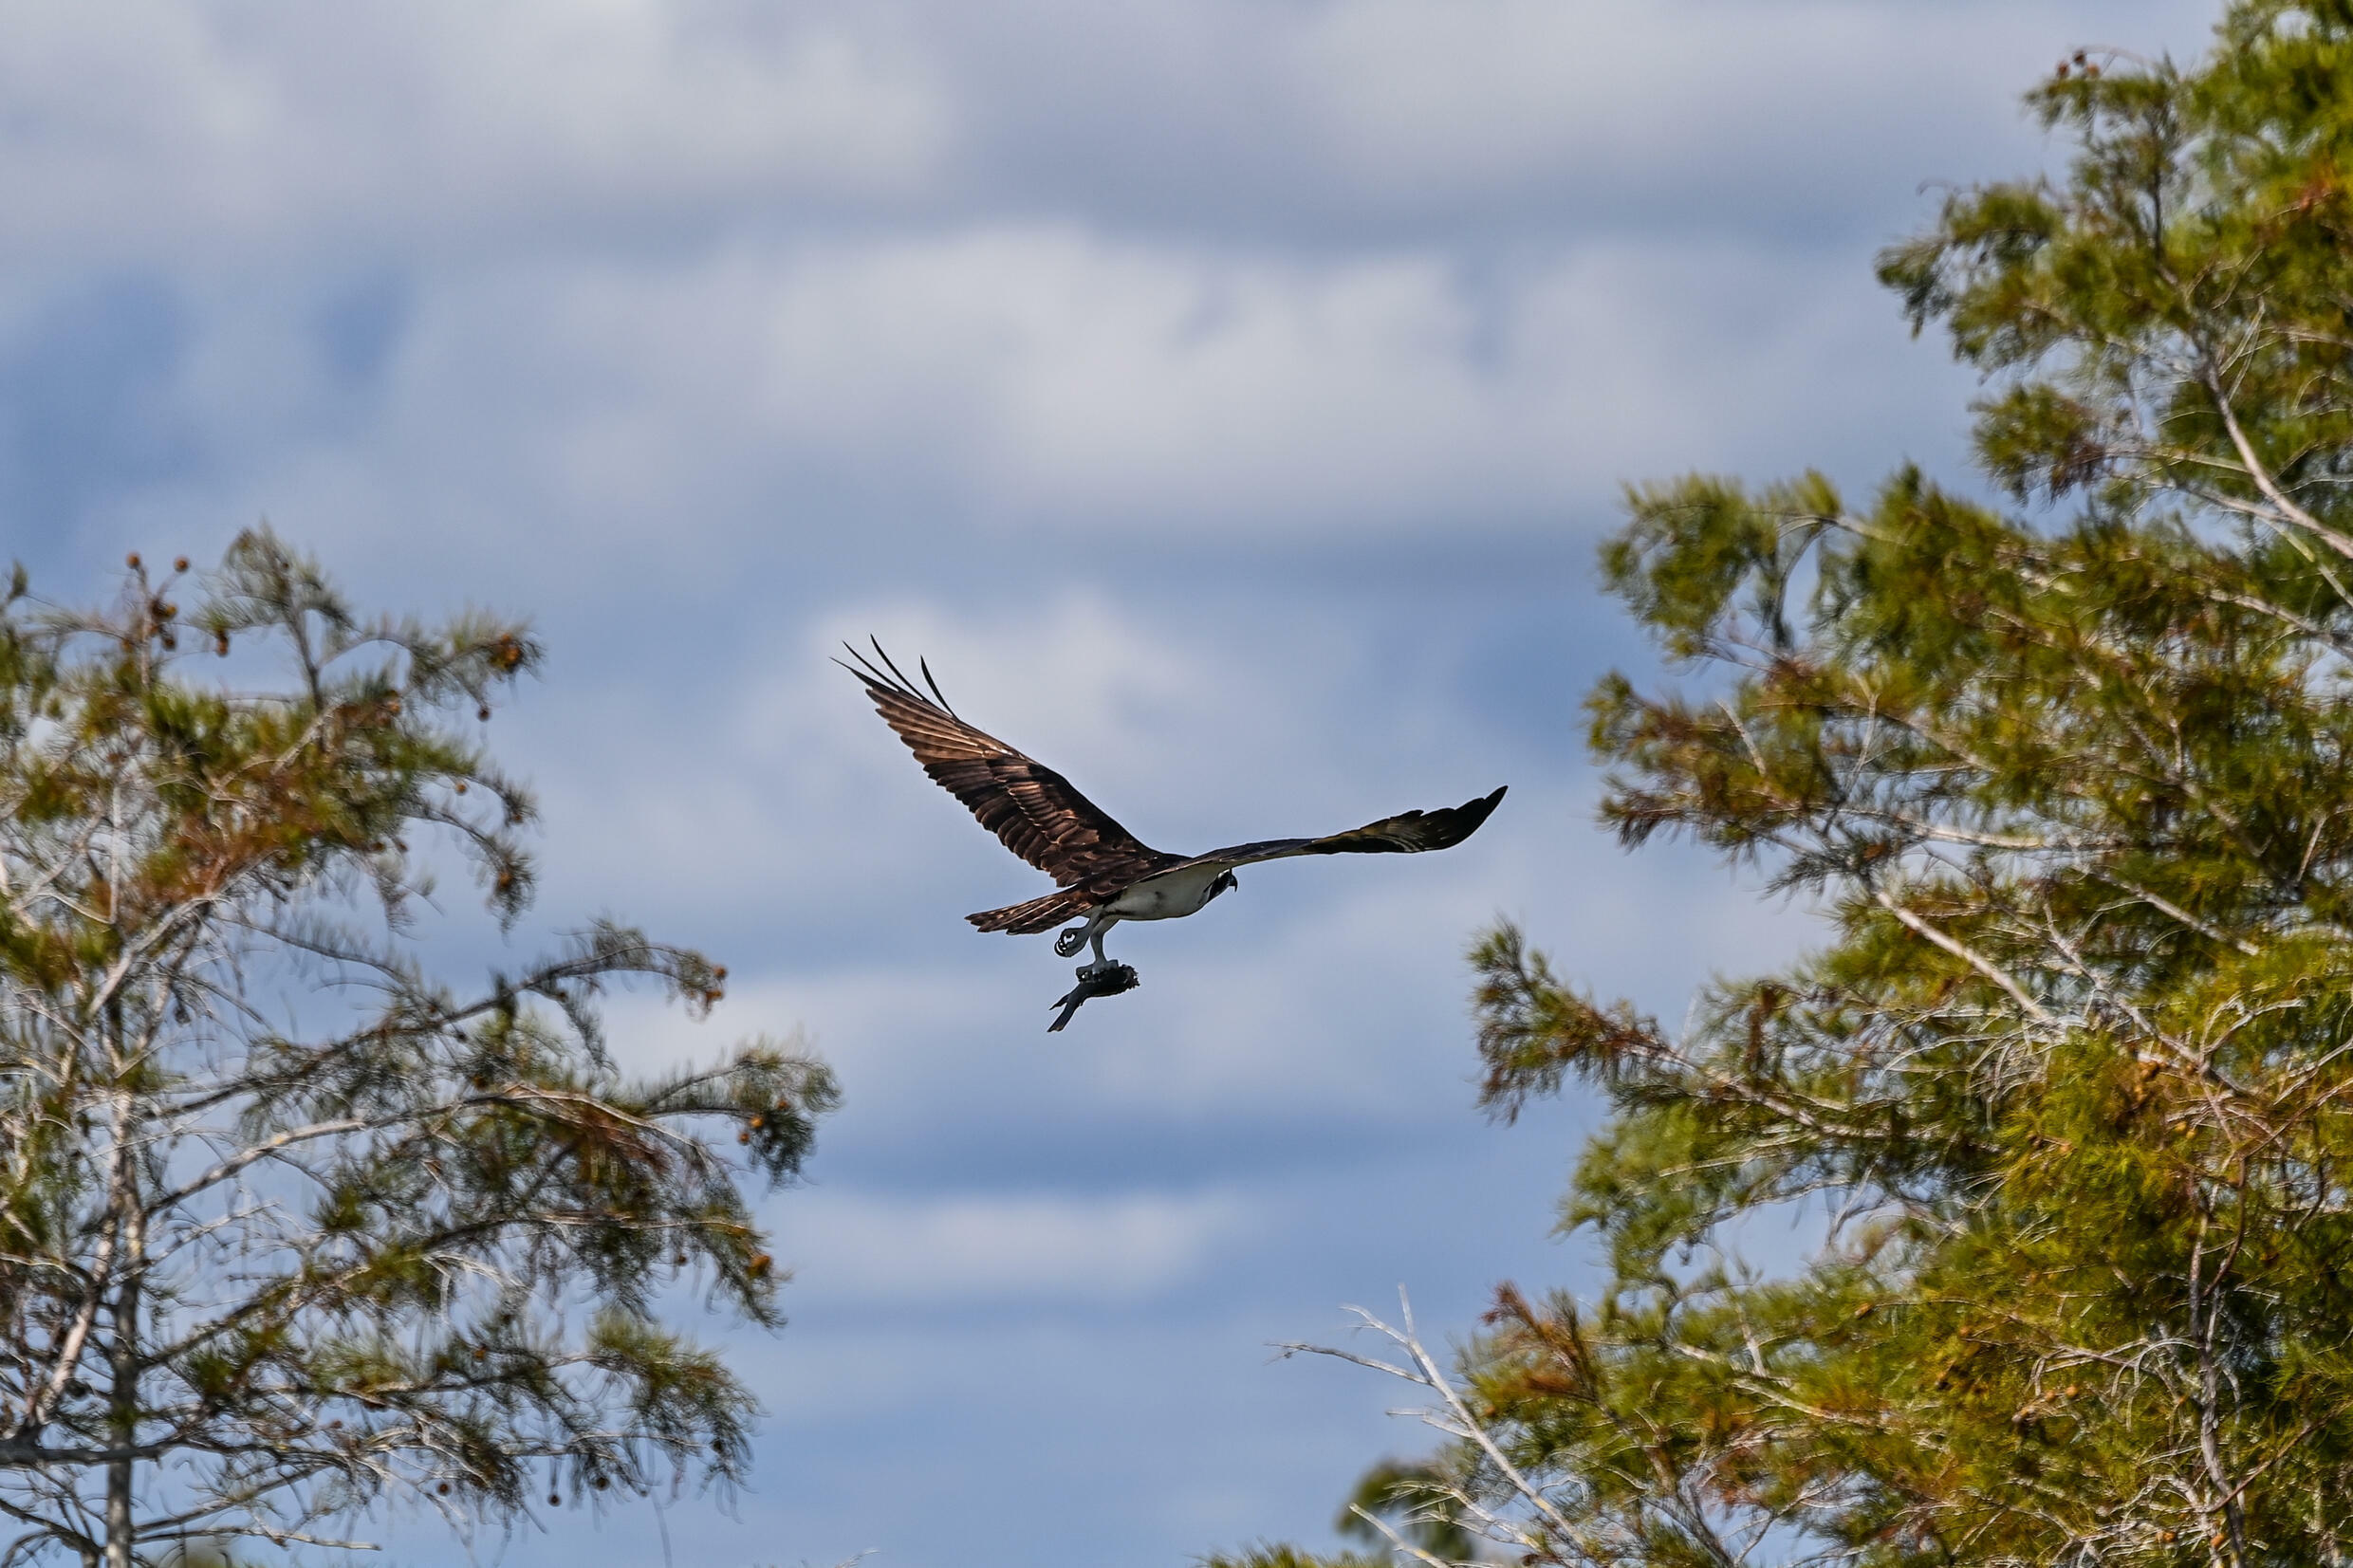 A bird flies holding its prey in Everglades National Park, Florida on September 30, 2021 as America's largest wetland faces a myriad of climate change threats